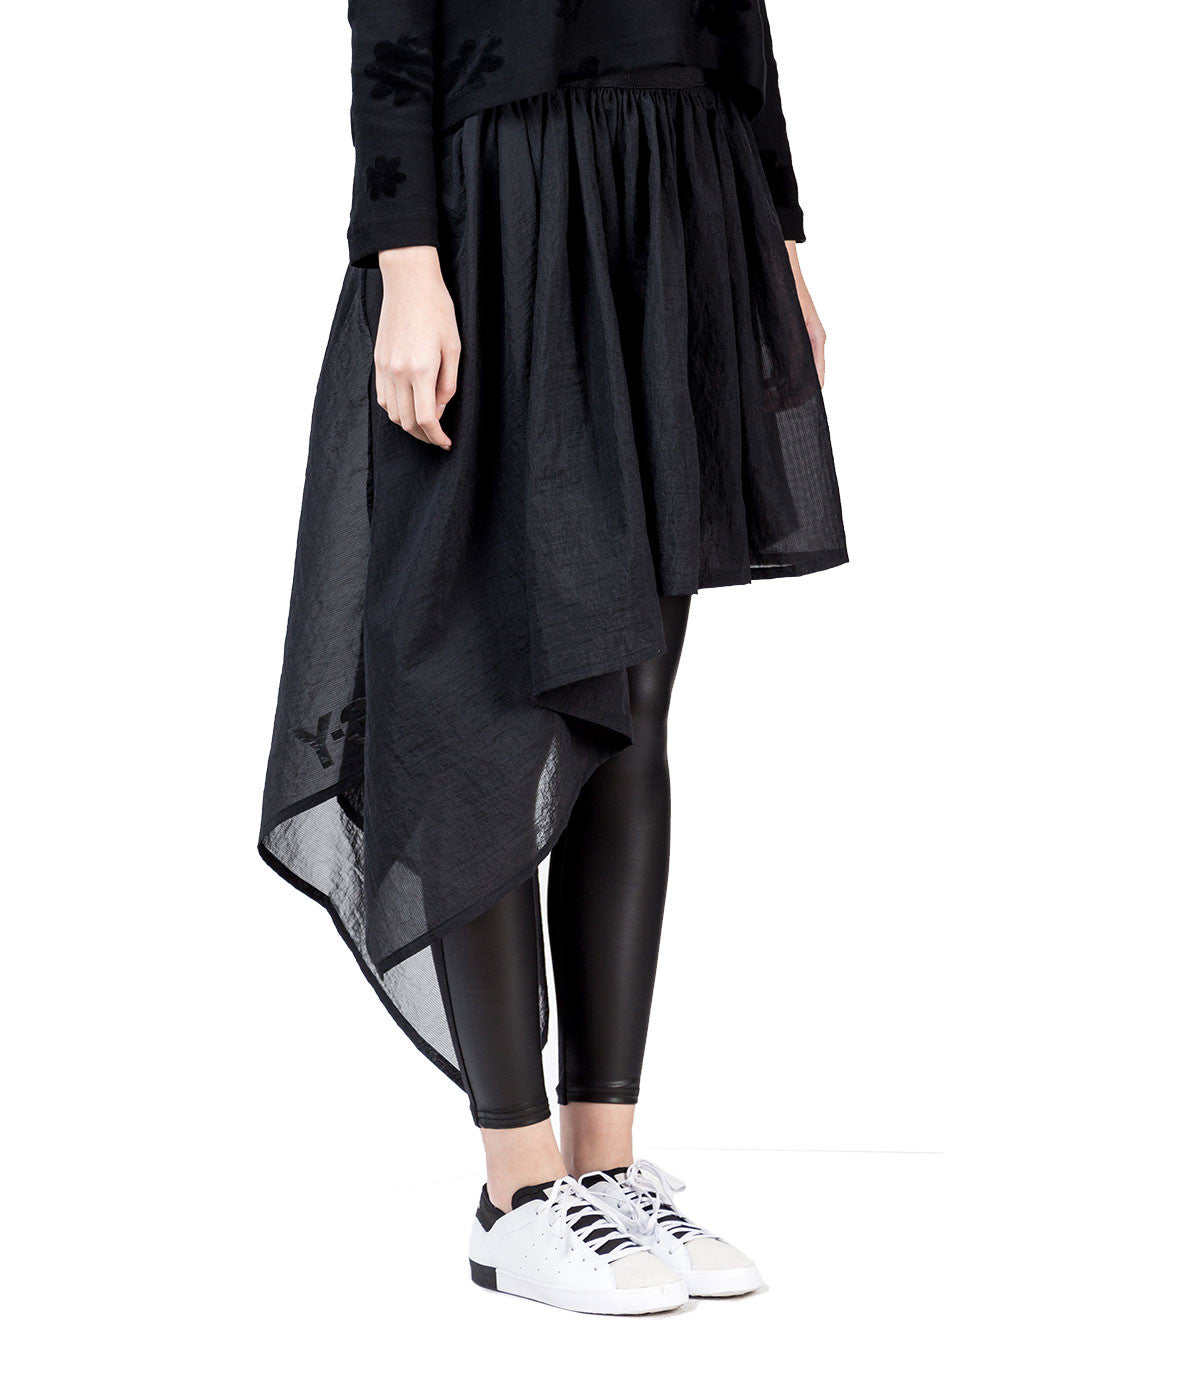 Asymmetrical Air Mesh Skirt